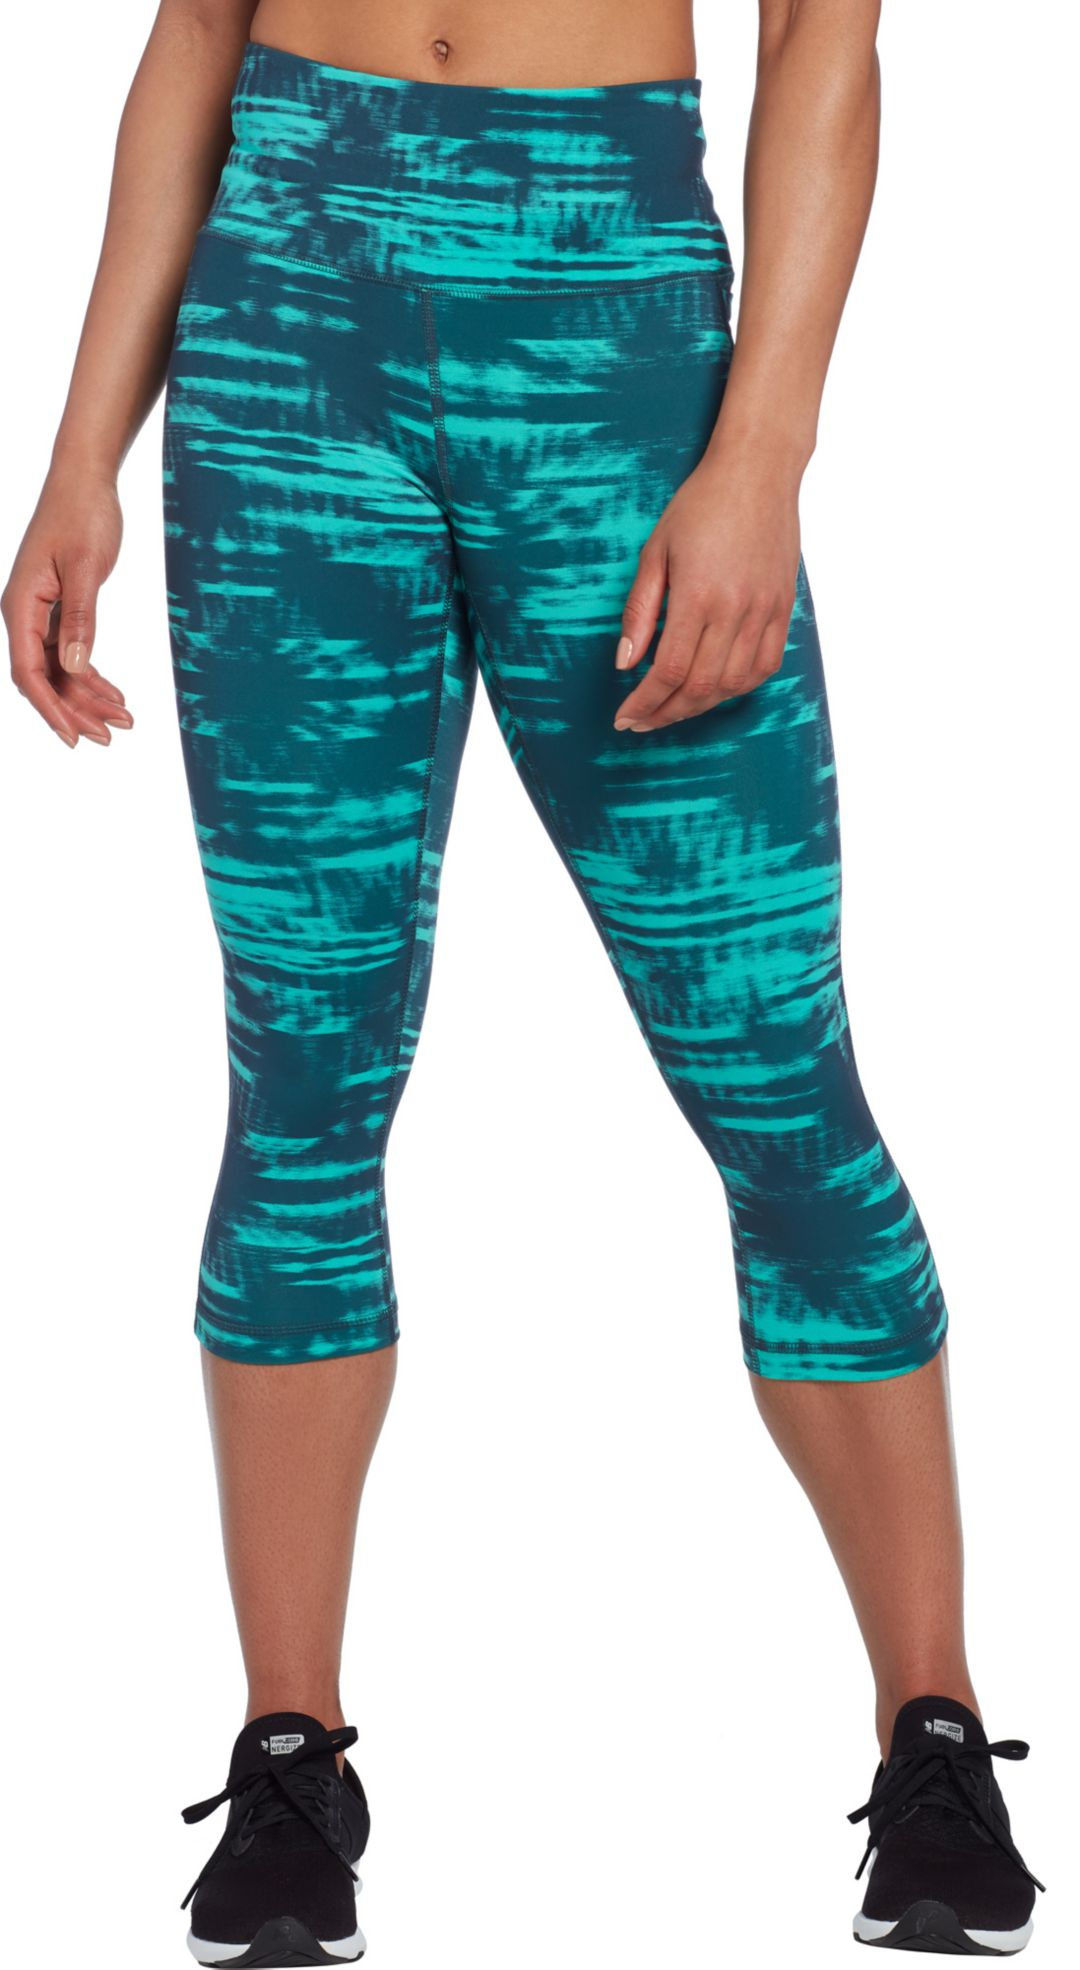 a8d9828c453f1 Reebok Women's Printed Performance Pocket Capris | DICK'S Sporting Goods